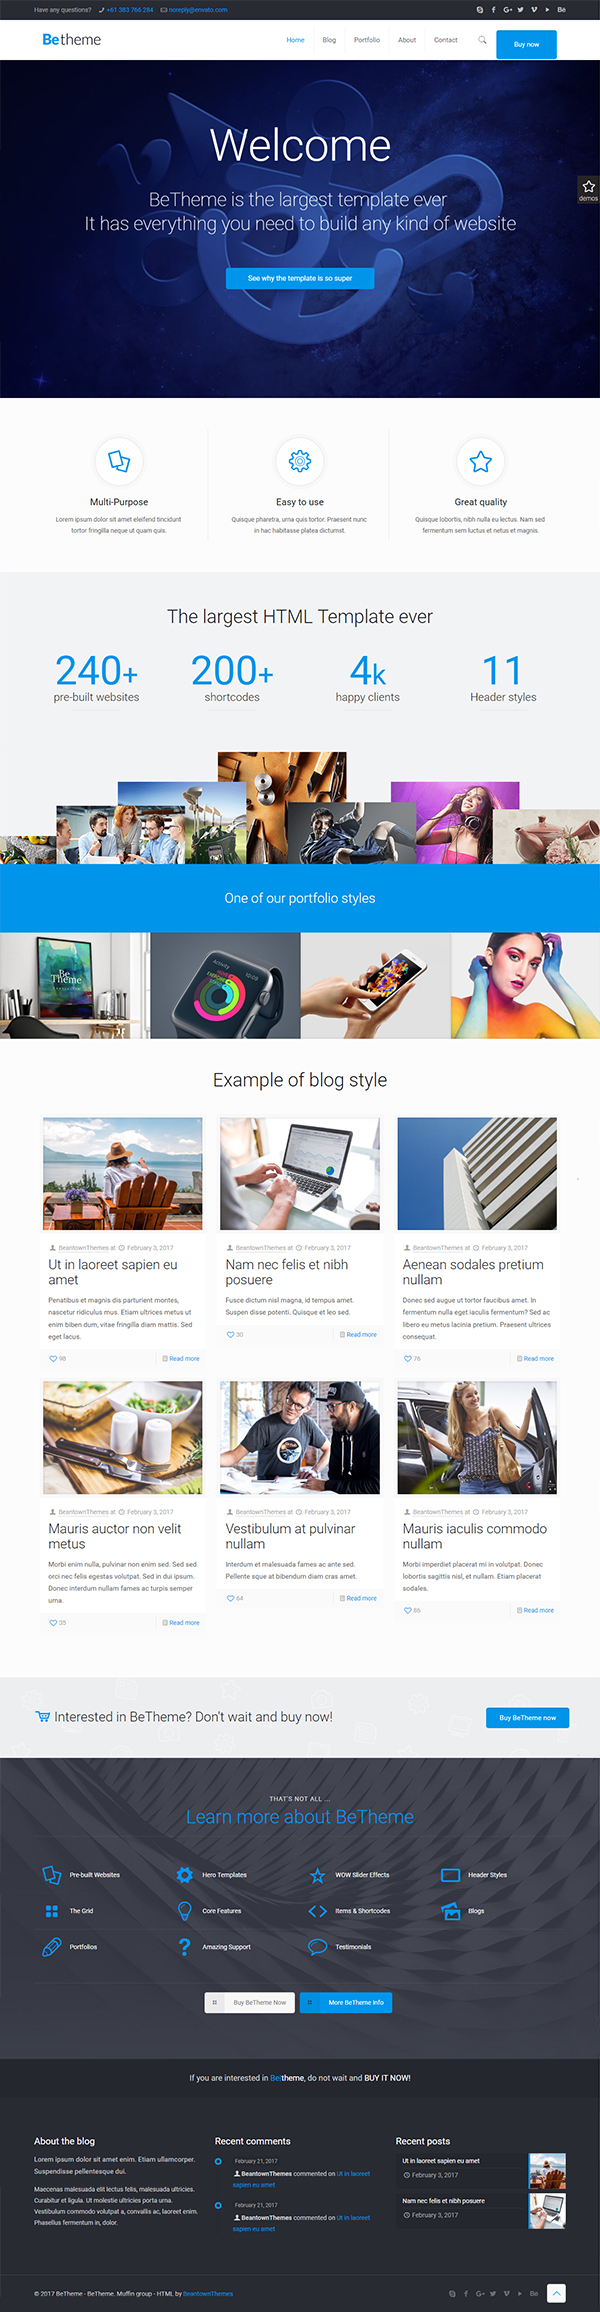 BeTheme - HTML Responsive Multi-Purpose Template